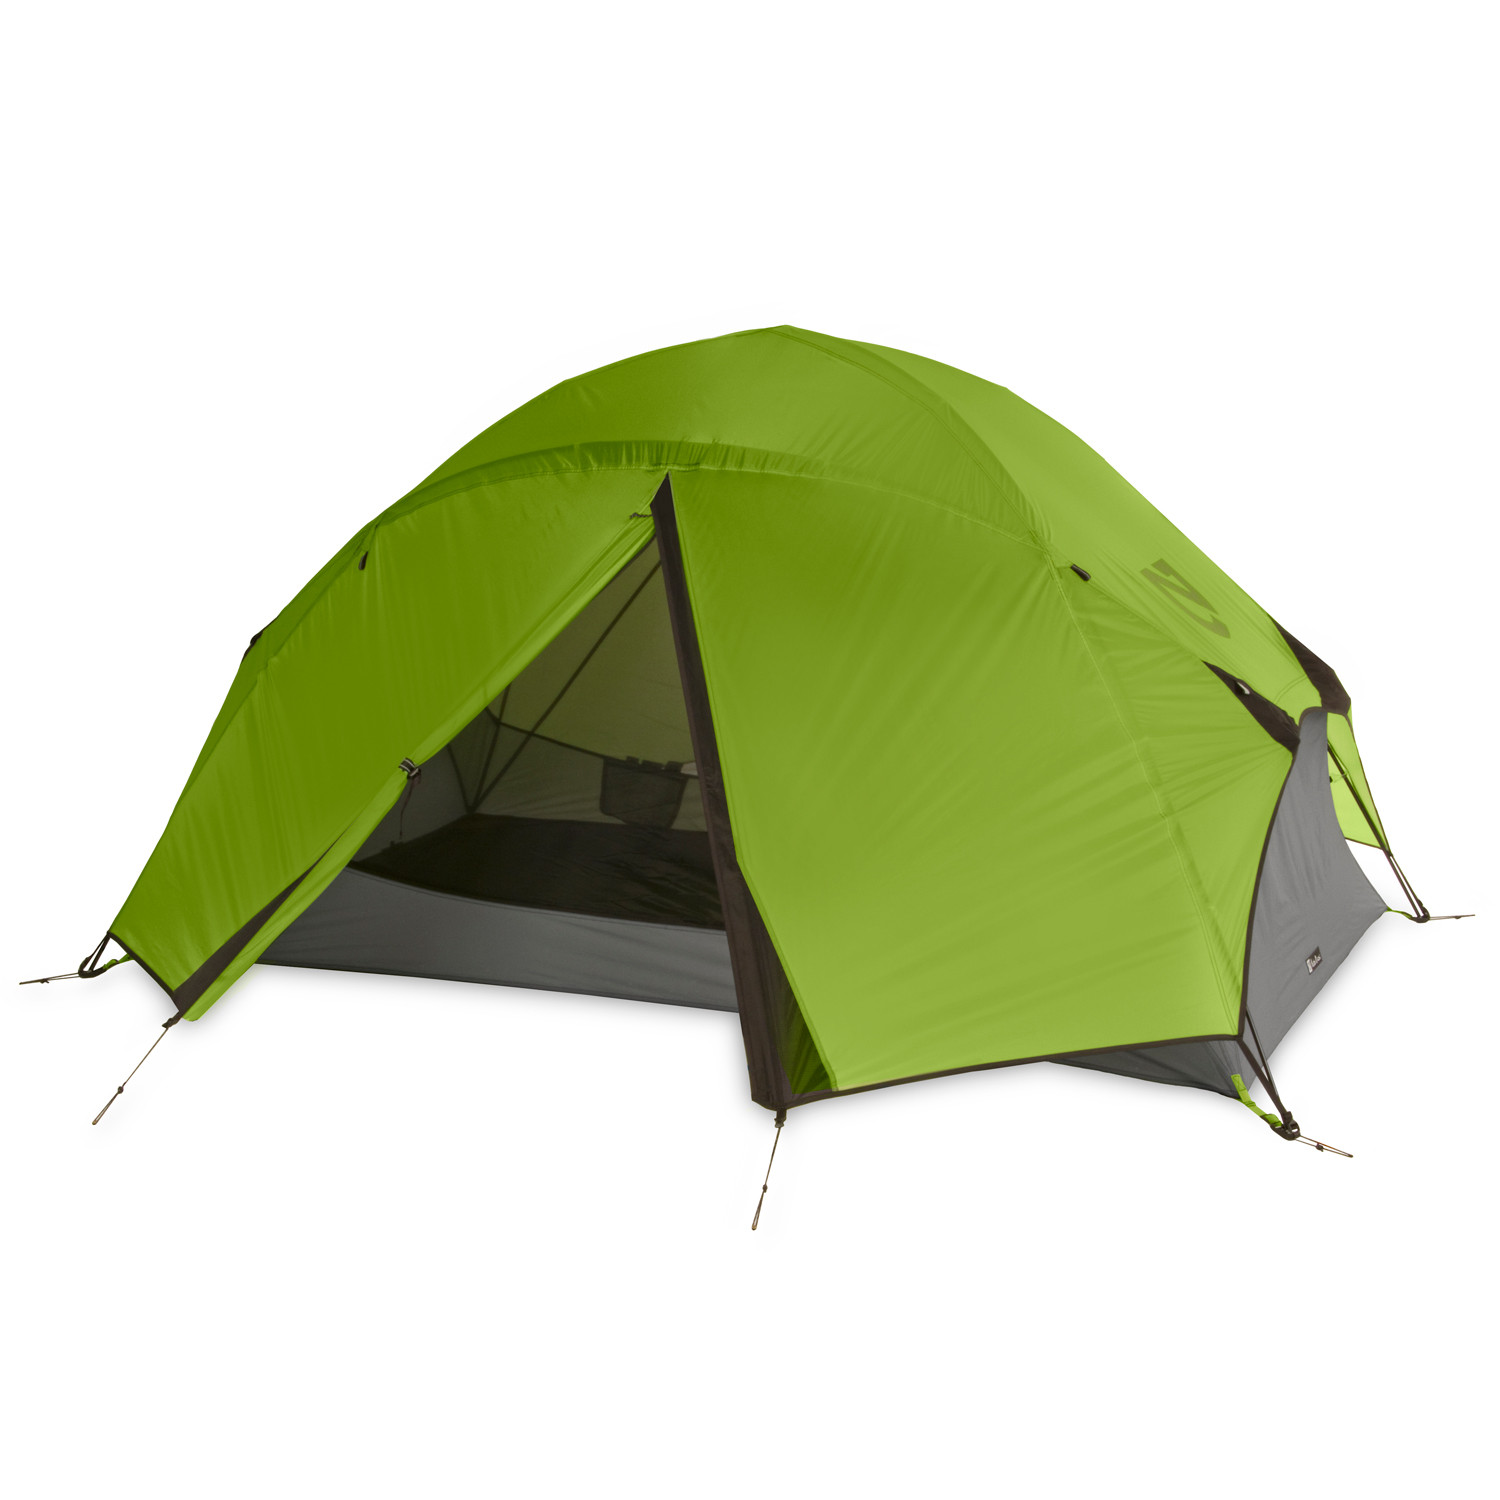 Losi 2P Backpacking Tent u0026 Footprint  sc 1 st  Touch of Modern & Losi 2P Backpacking Tent u0026 Footprint - Nemo Camping Gear - Touch ...